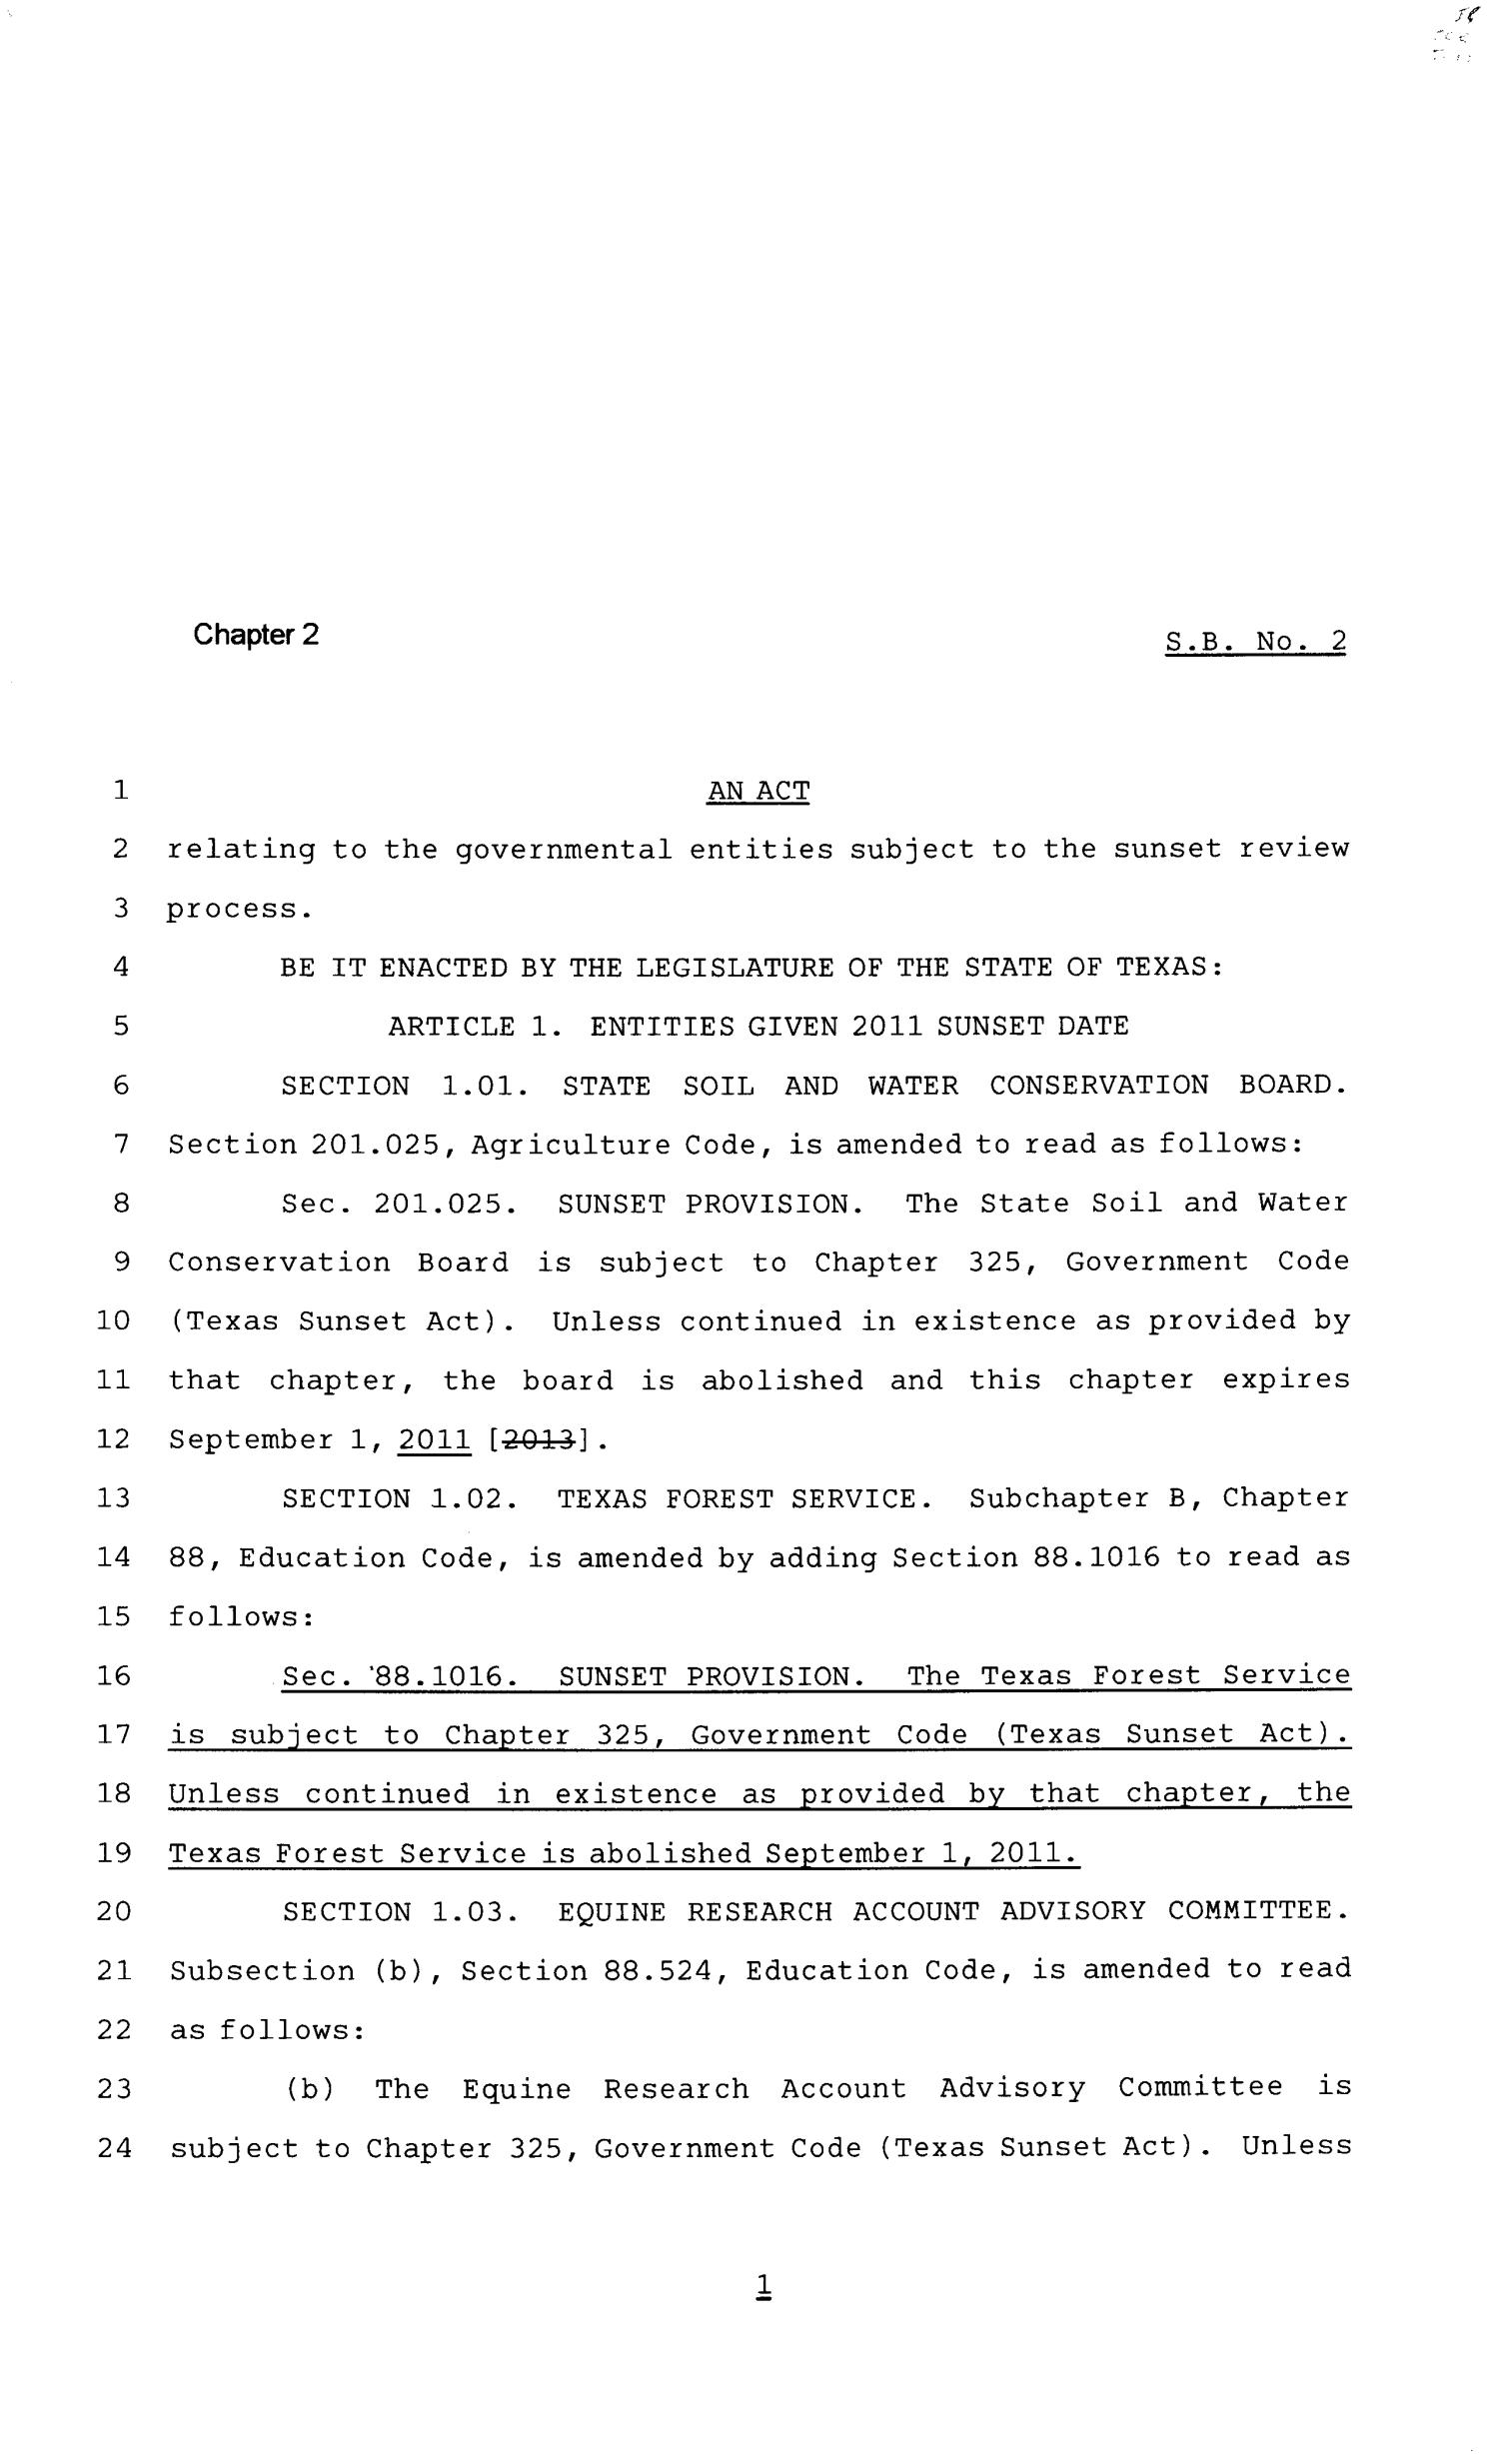 81st Texas Legislature, First Called Session, Senate Bill 2, Chapter 2                                                                                                      [Sequence #]: 1 of 14